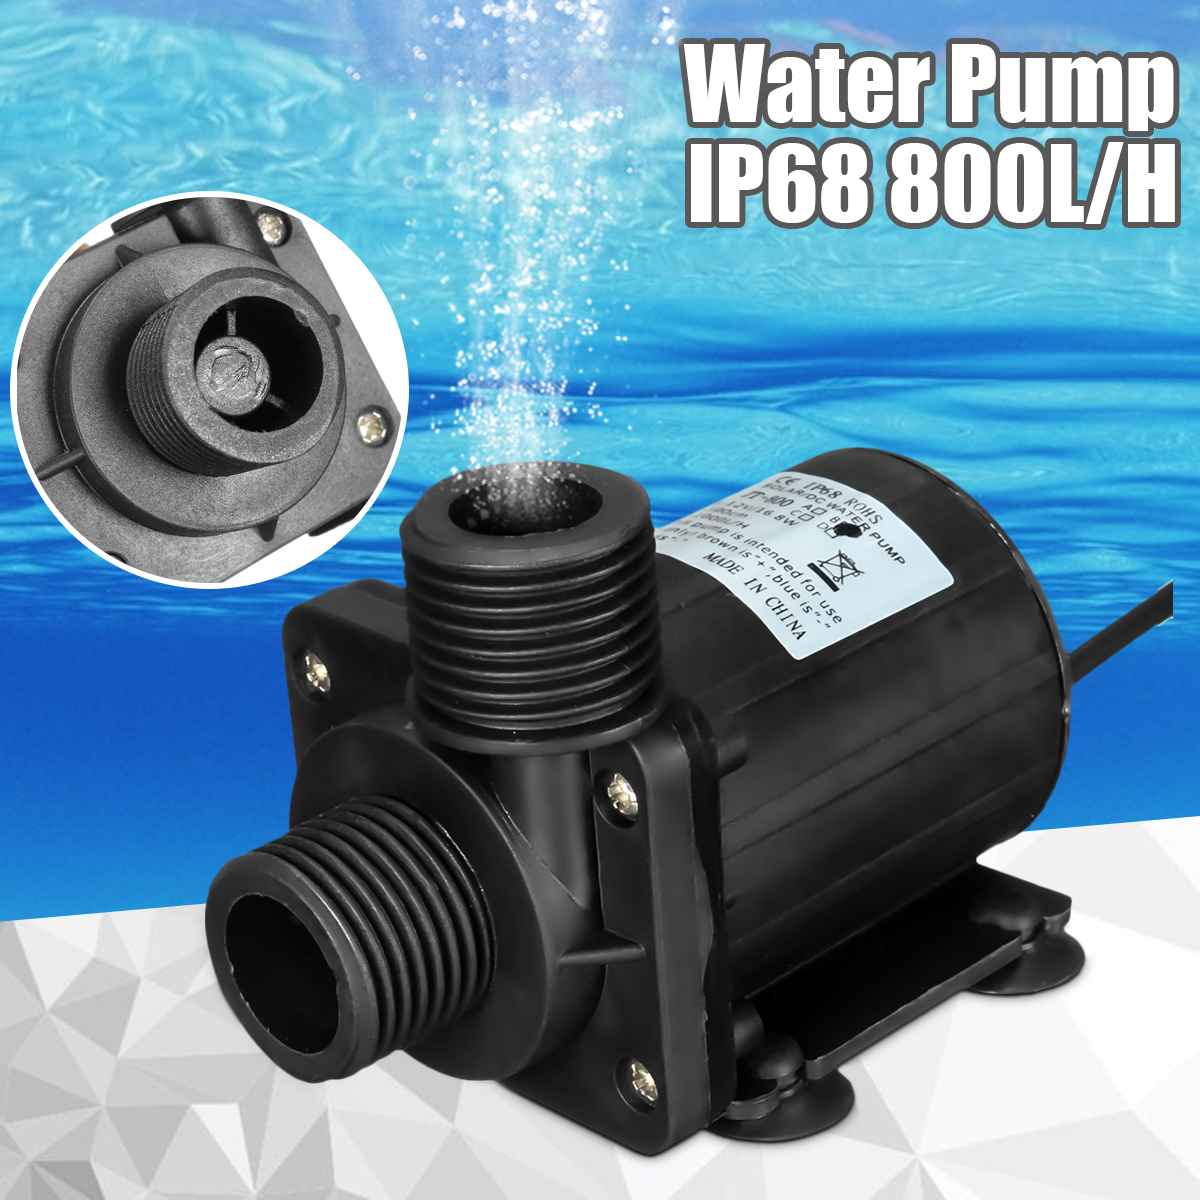 DC 12V 5M 800L/H Portable Mini Brushless Motor Ultra-quiet Submersible Water Pump for Cooling System Fountains Heater PressureDC 12V 5M 800L/H Portable Mini Brushless Motor Ultra-quiet Submersible Water Pump for Cooling System Fountains Heater Pressure